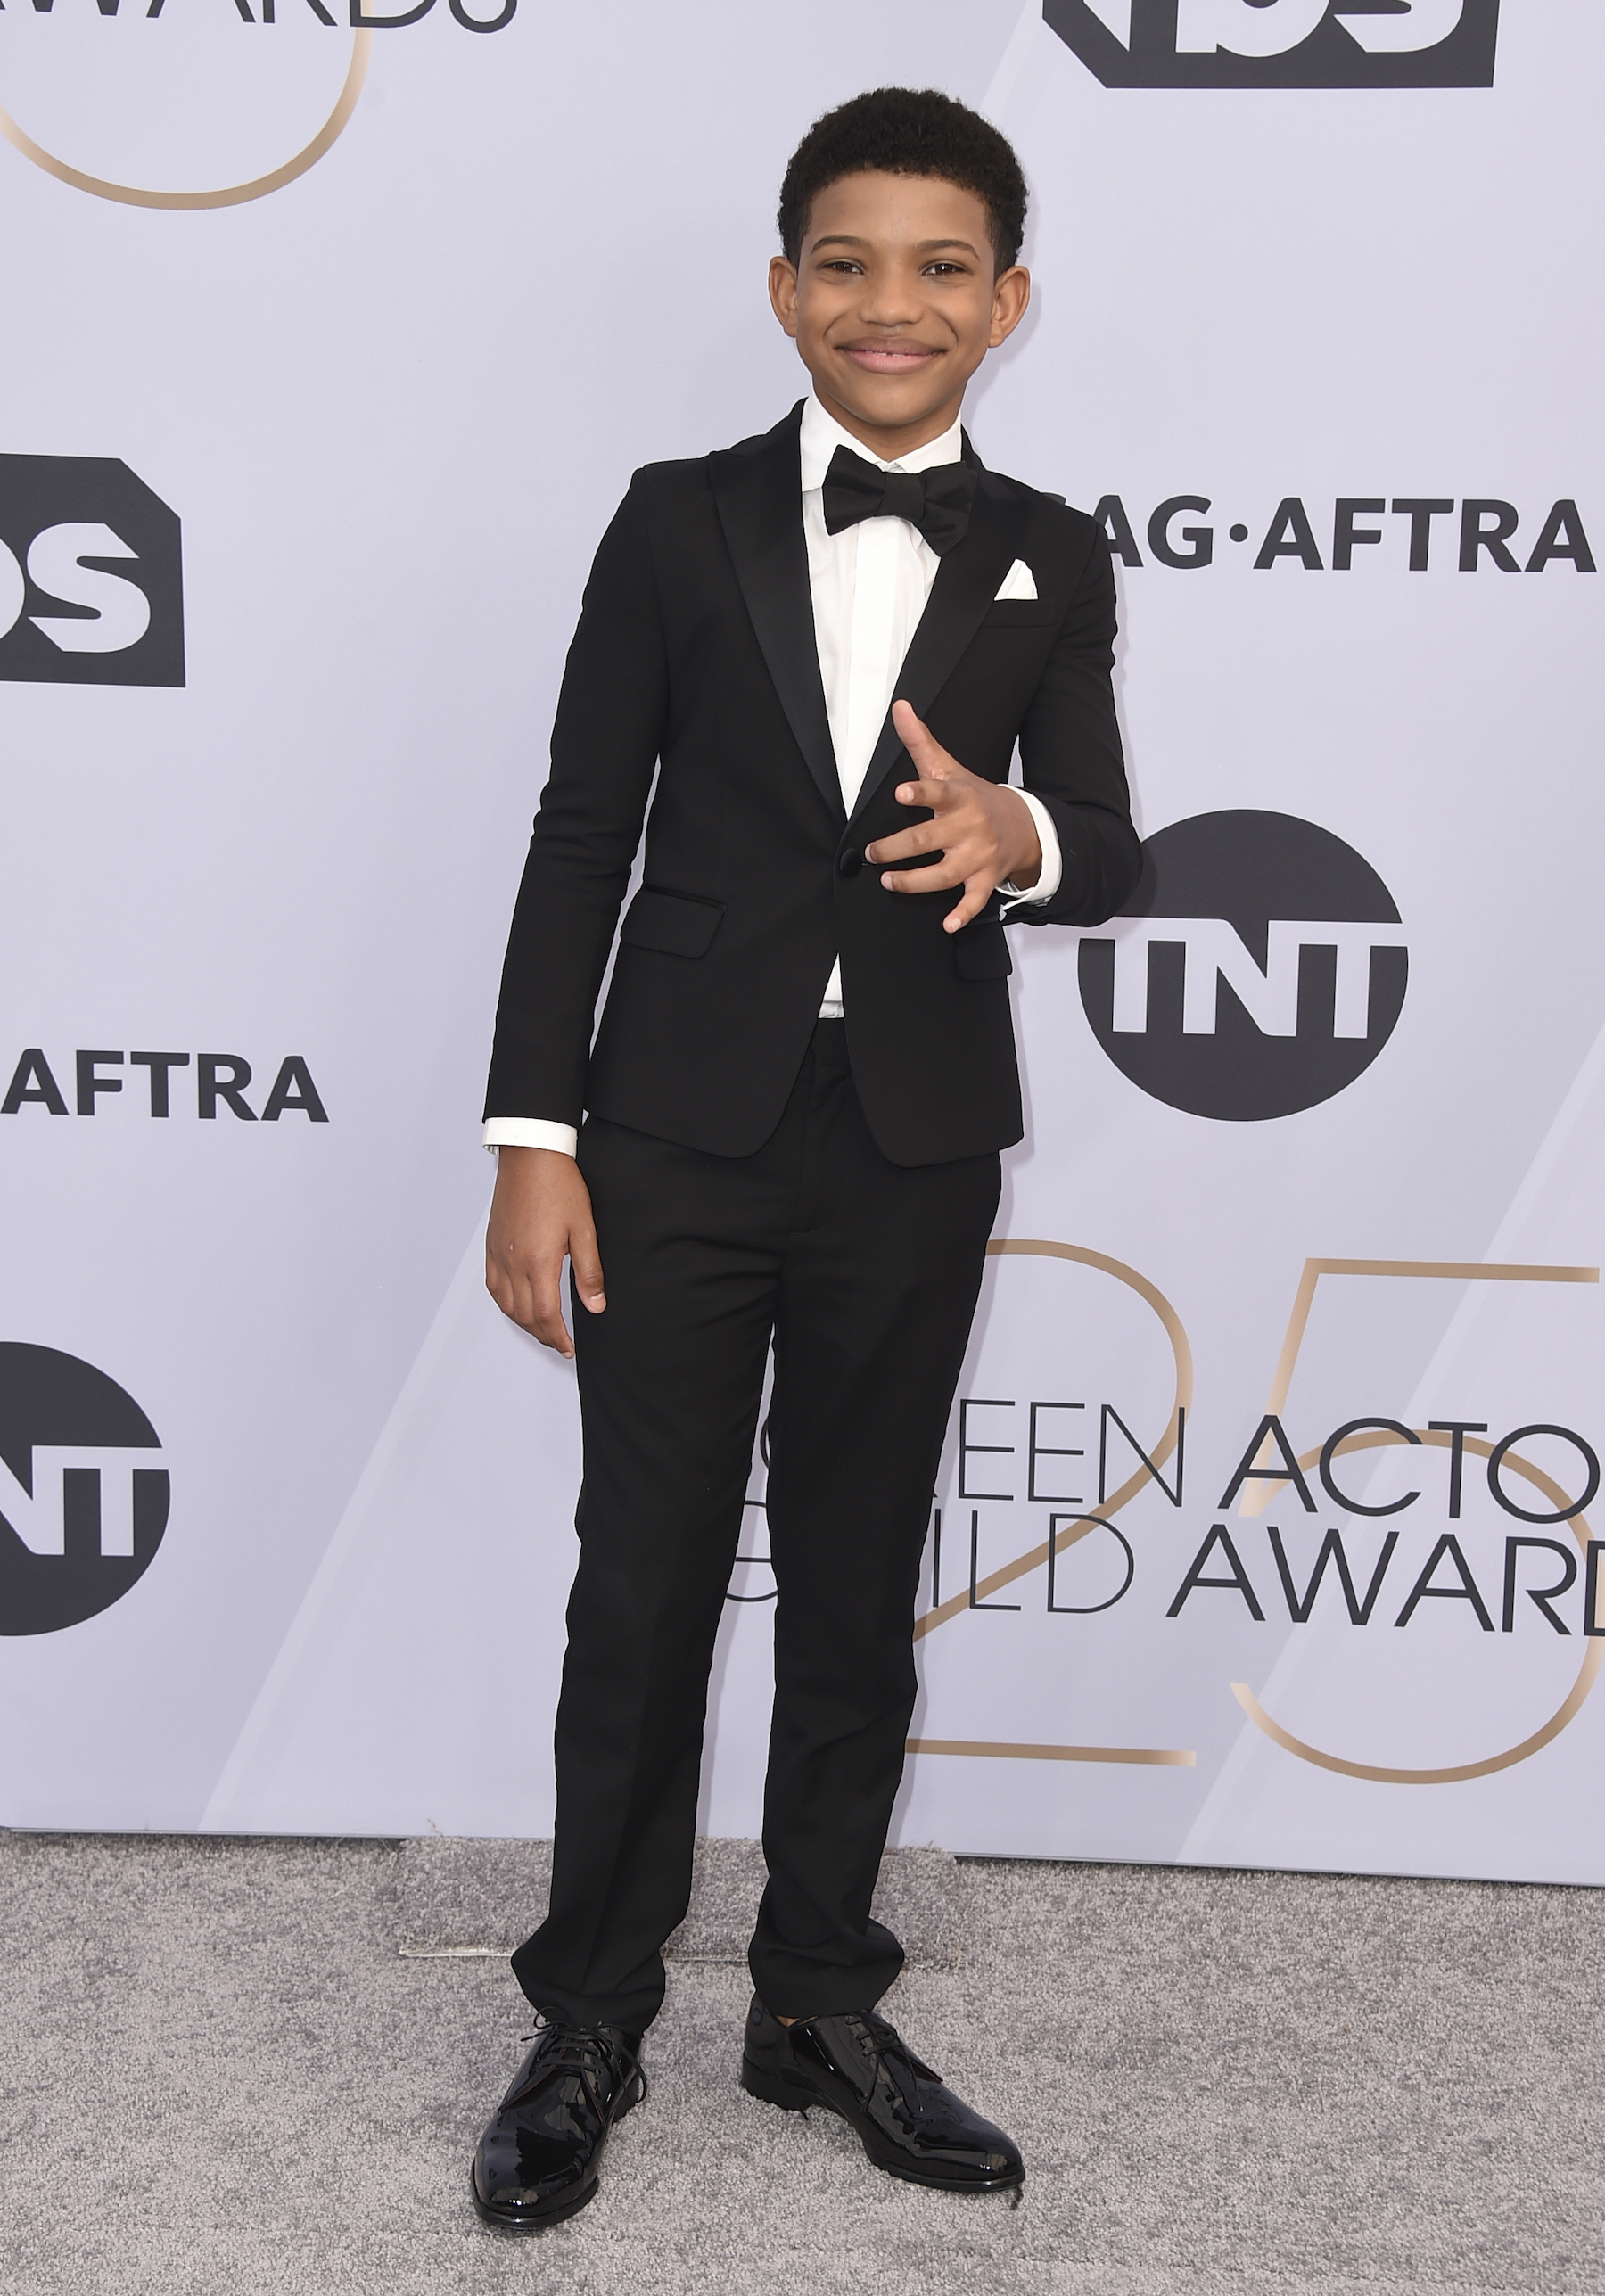 <div class='meta'><div class='origin-logo' data-origin='AP'></div><span class='caption-text' data-credit='Jordan Strauss/Invision/AP'>Lonnie Chavis arrives at the 25th annual Screen Actors Guild Awards at the Shrine Auditorium & Expo Hall on Sunday, Jan. 27, 2019, in Los Angeles.</span></div>